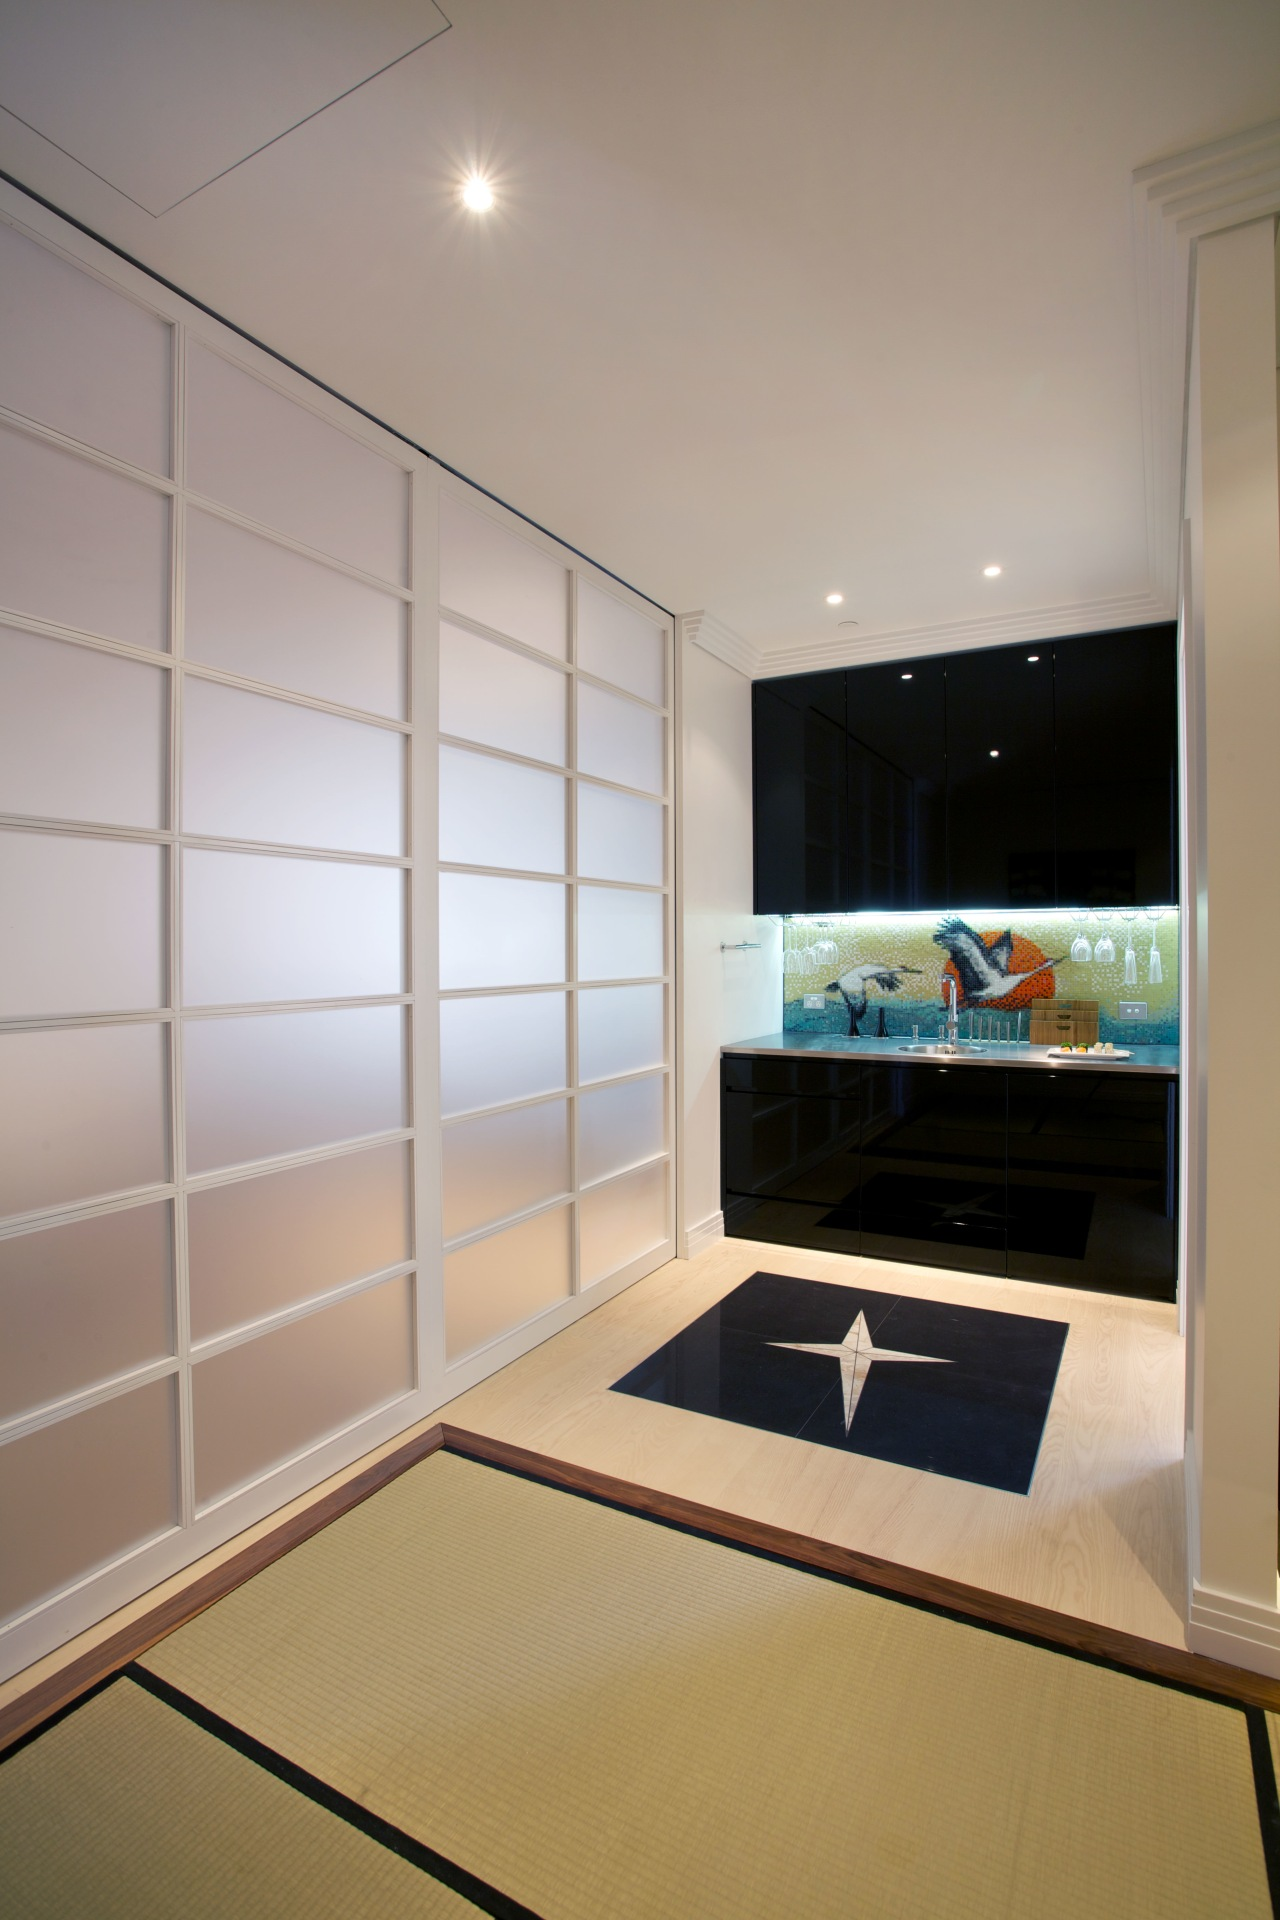 Tea cabinet seen from meditation room in Japanese architecture, ceiling, interior design, room, gray